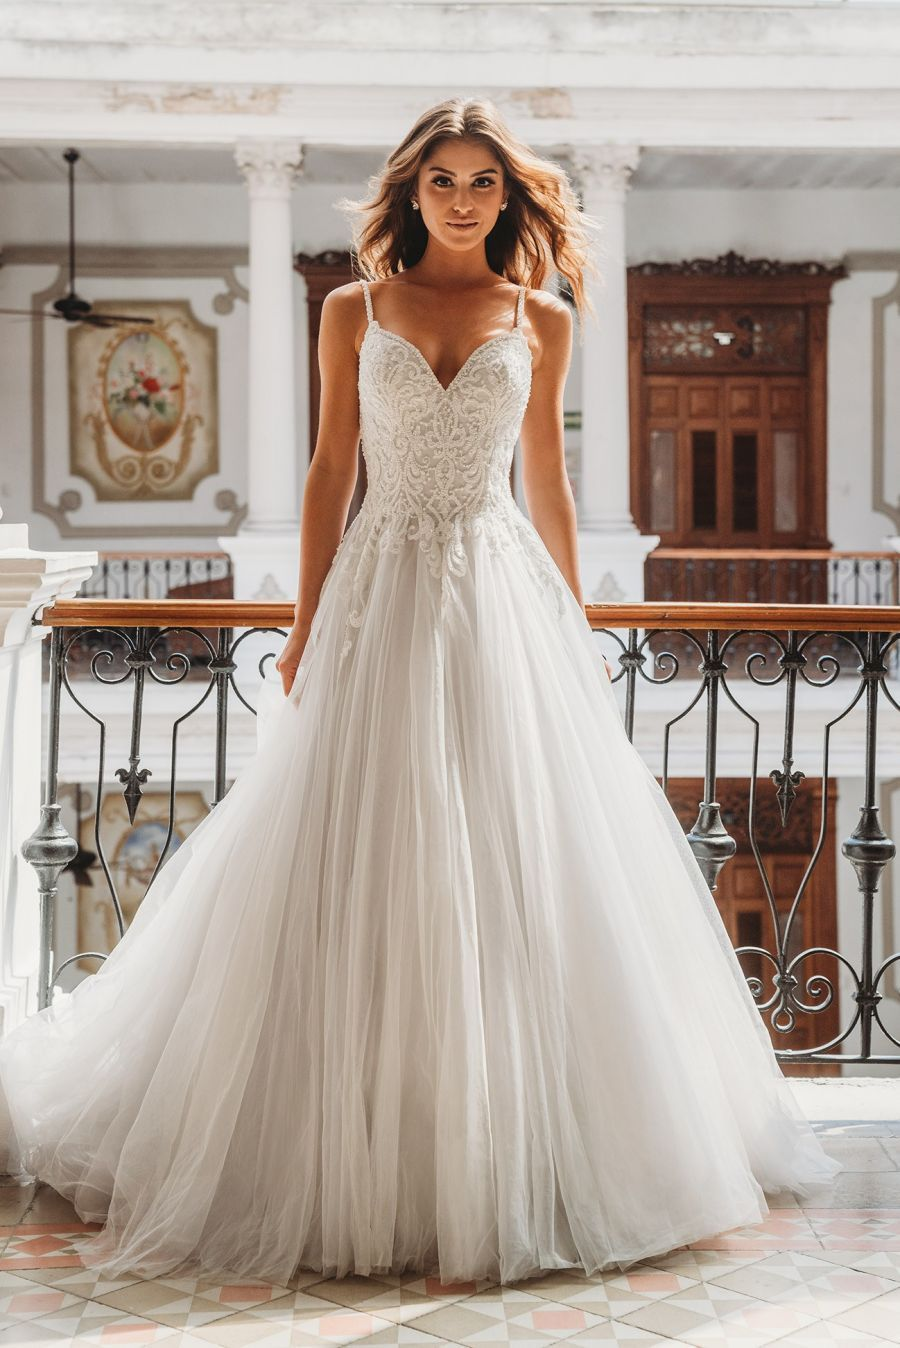 The Style 9667 Wedding Dress From Allure Bridals Is Perfect For A Simple Outdoor Wedding Country We Allure Bridal Outdoor Wedding Dress Gorgeous Wedding Dress [ 1348 x 900 Pixel ]